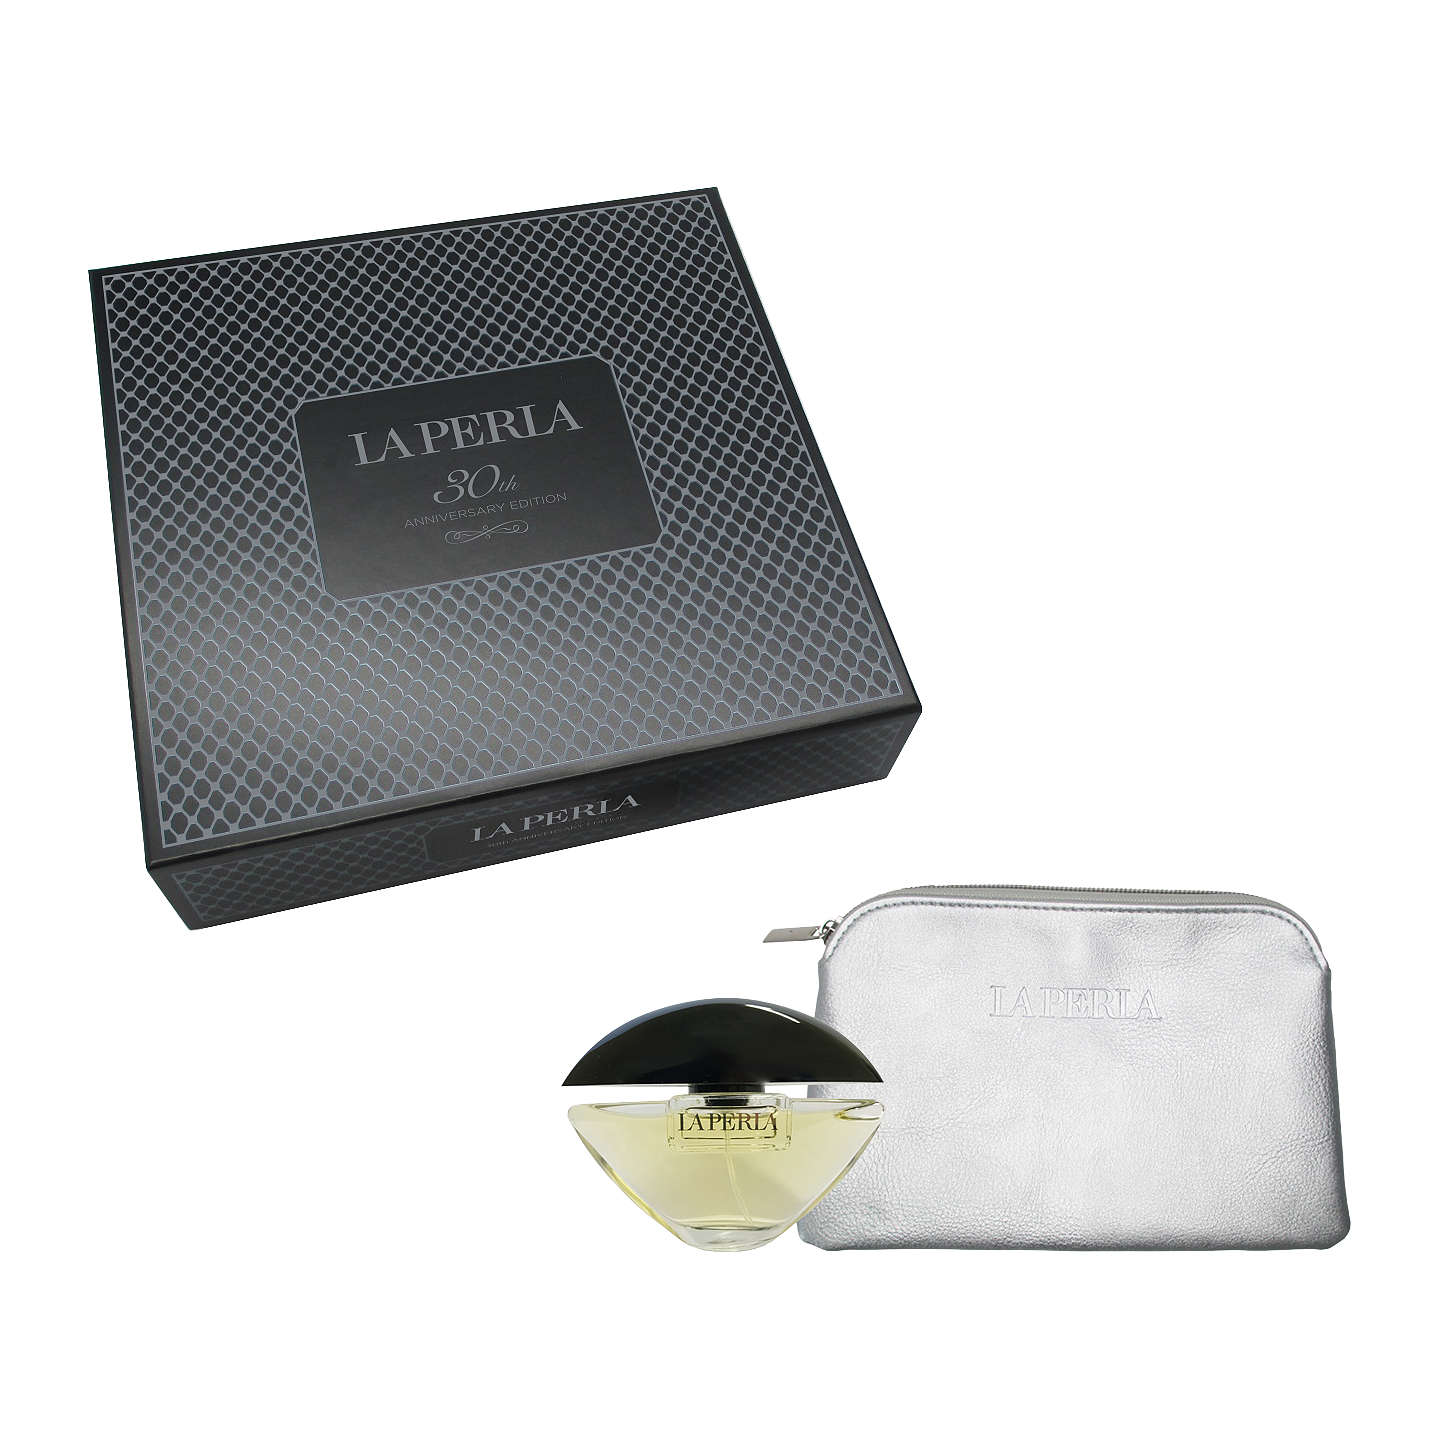 BuyLa Perla Classic 50ml Eau de Toilette Fragrance Gift Set Online at johnlewis.com